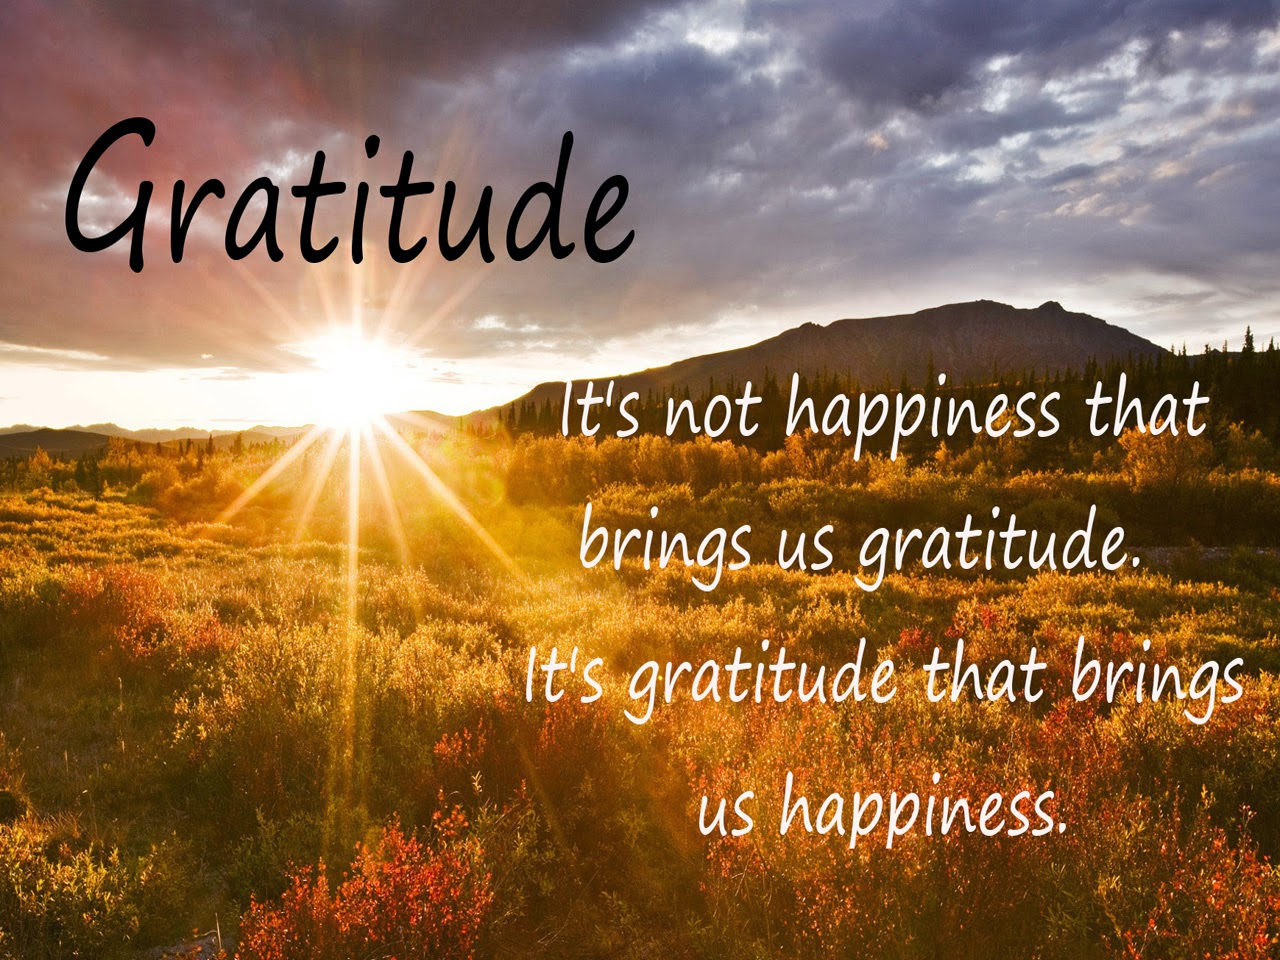 thankful quotes gratitude it is not happiness meridian success